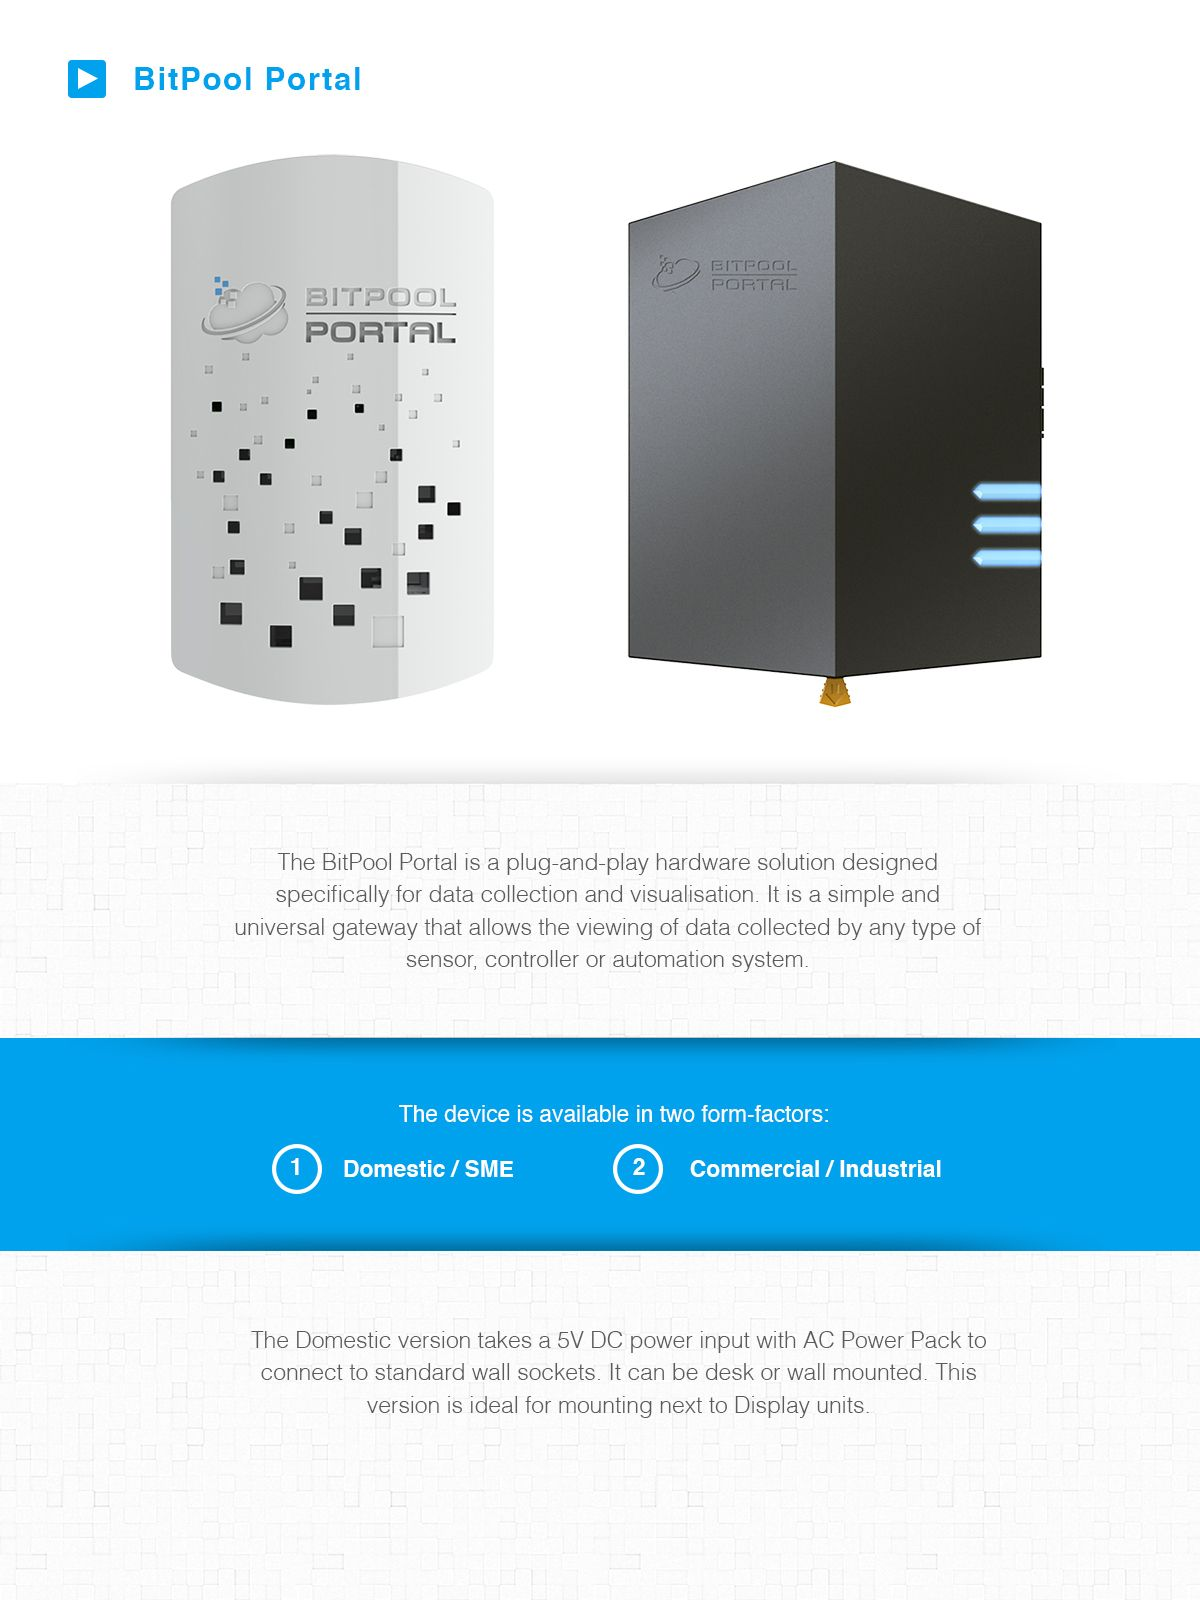 The BitPool Portal is a plug-and-play hardware solution designed specifically for data collection and visualisation. It is a simple and universal gateway that allows the viewing of data collected by any type of sensor, controller or automation system.